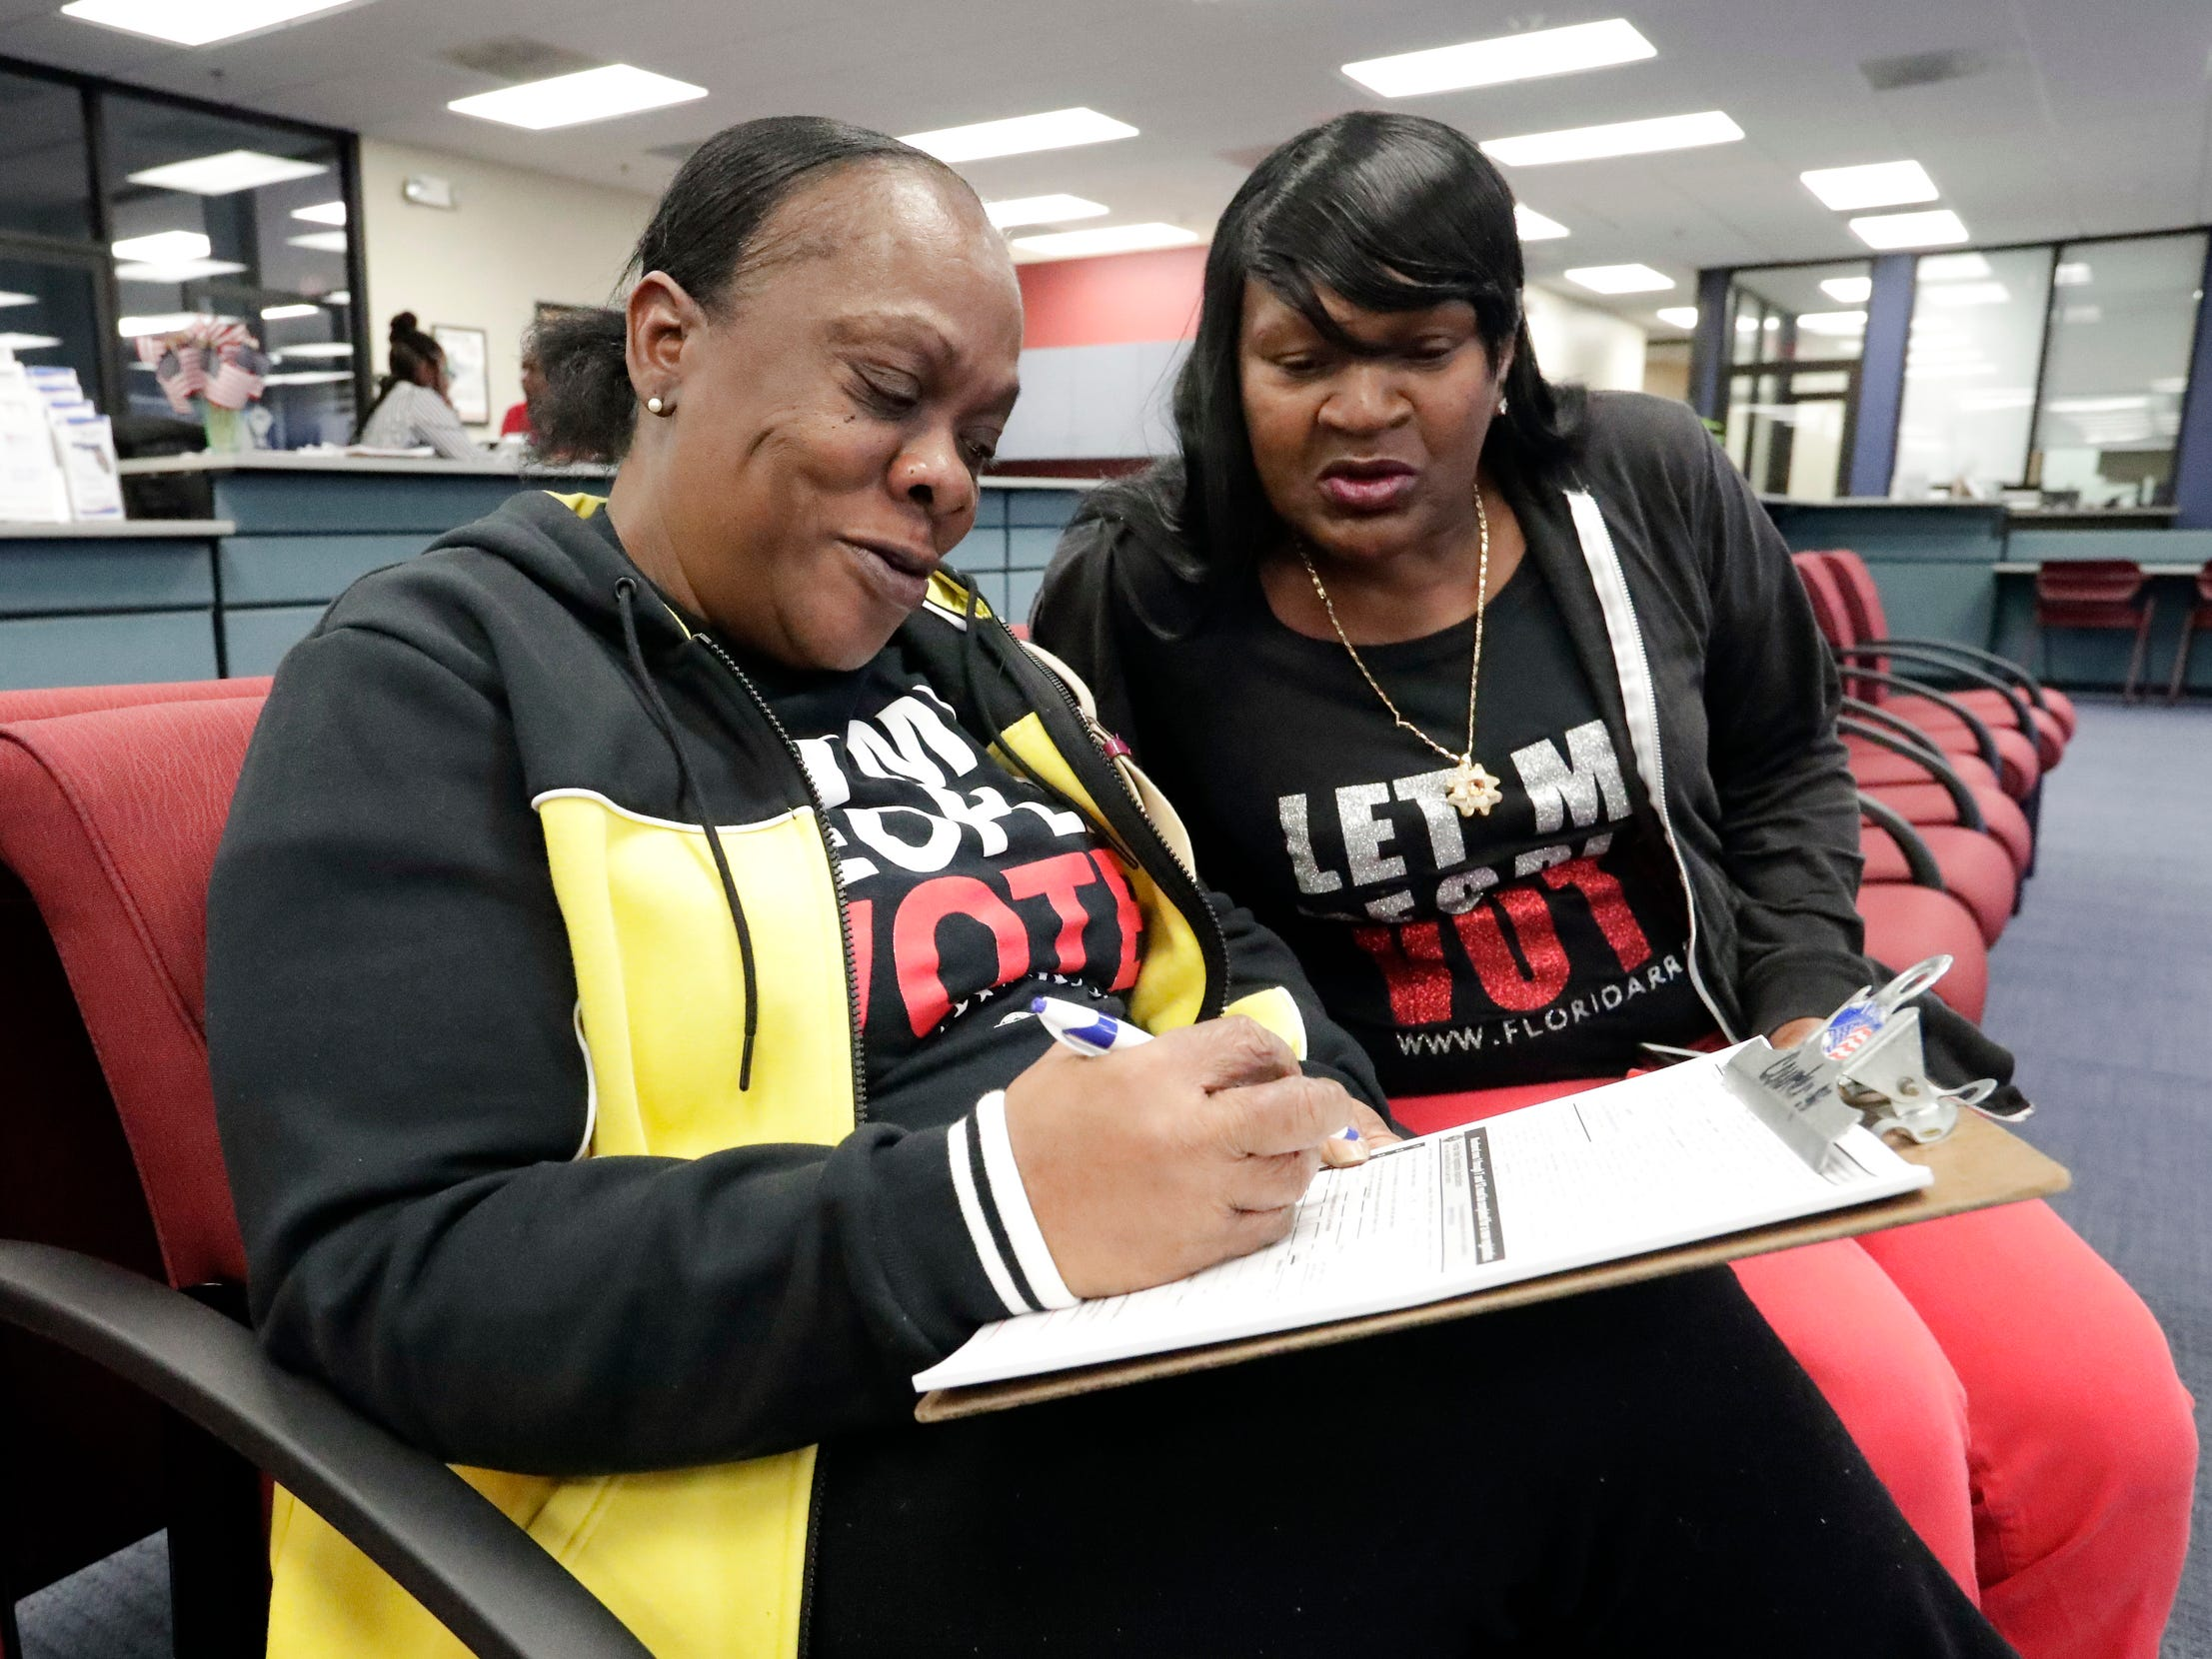 Former felon Yolanda Wilcox, left, fills out a voter registration form as her best friend Gale Buswell looks on at the Supervisor of Elections office in Orlando, Fla.